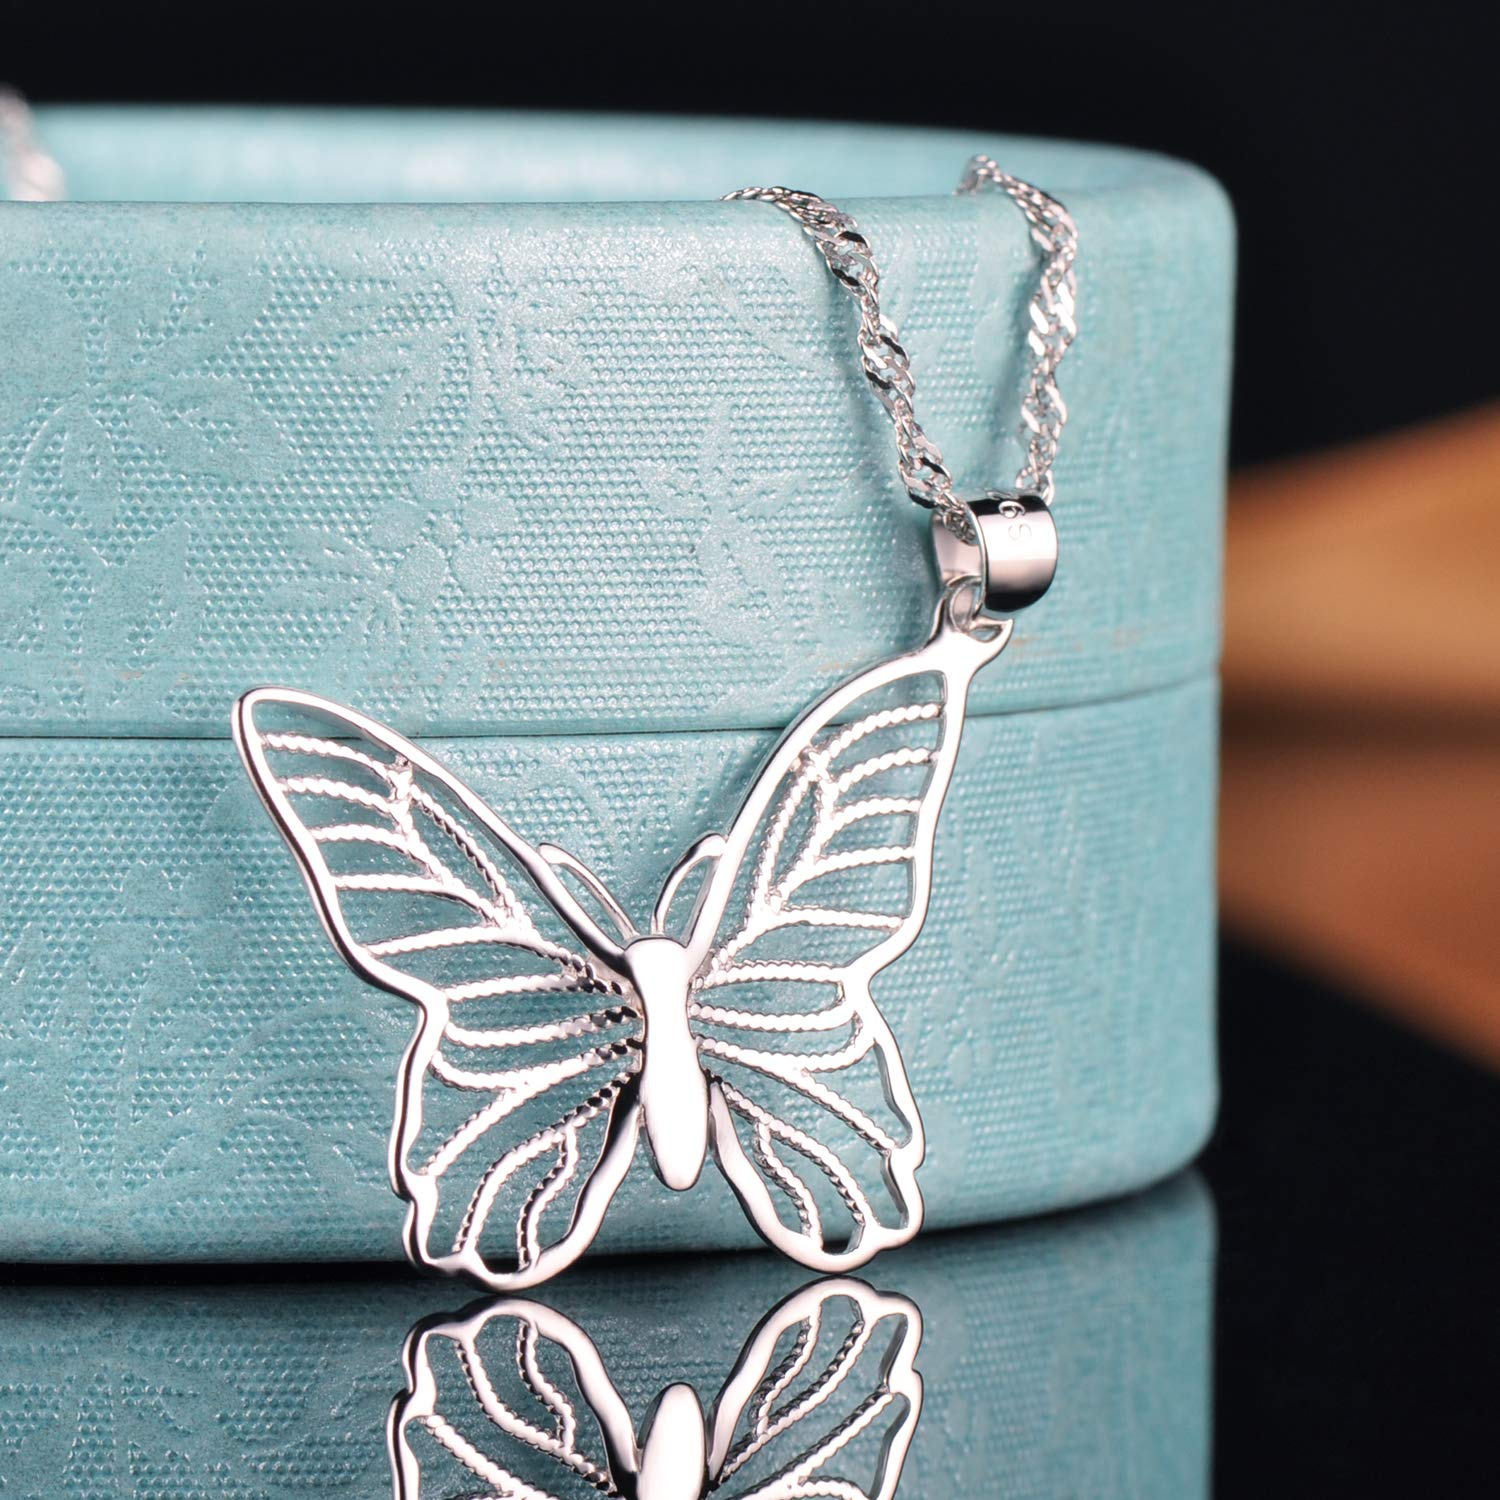 Yumilok Jewelry 925 Sterling Silver Pierced Out Lovely Butterfly Pendant Necklace for Women//Girls